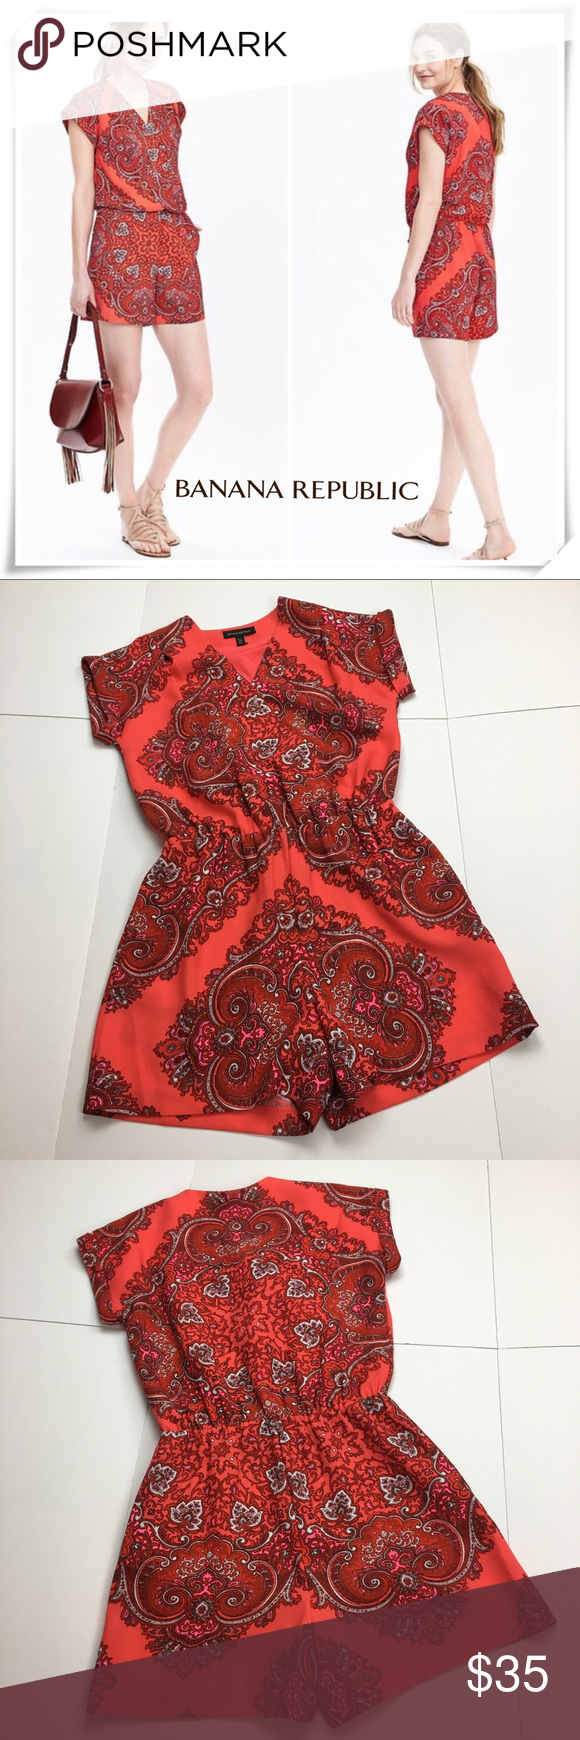 fdfb53e6aded Banana republic Red Paisley Romper Banana republic Red Paisley Romper Size  2 Petite   B 17.5